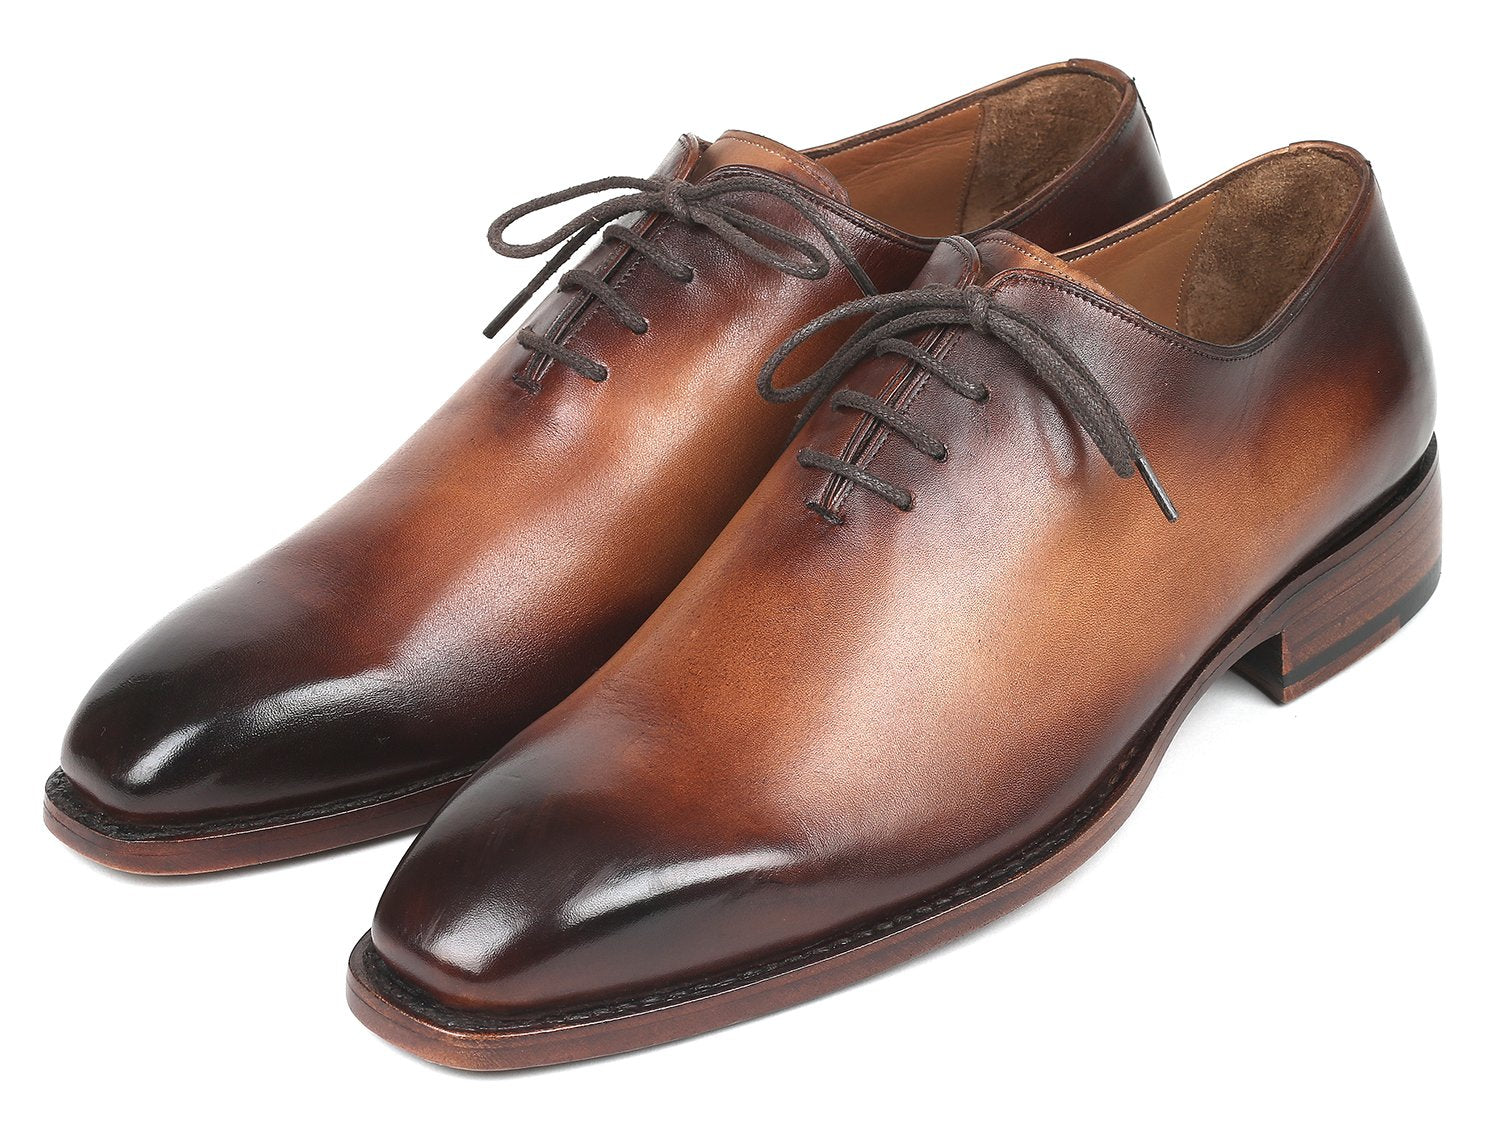 Paul Parkman Men's Wholecut Oxfords Brown Leather (ID#3222-BRW)